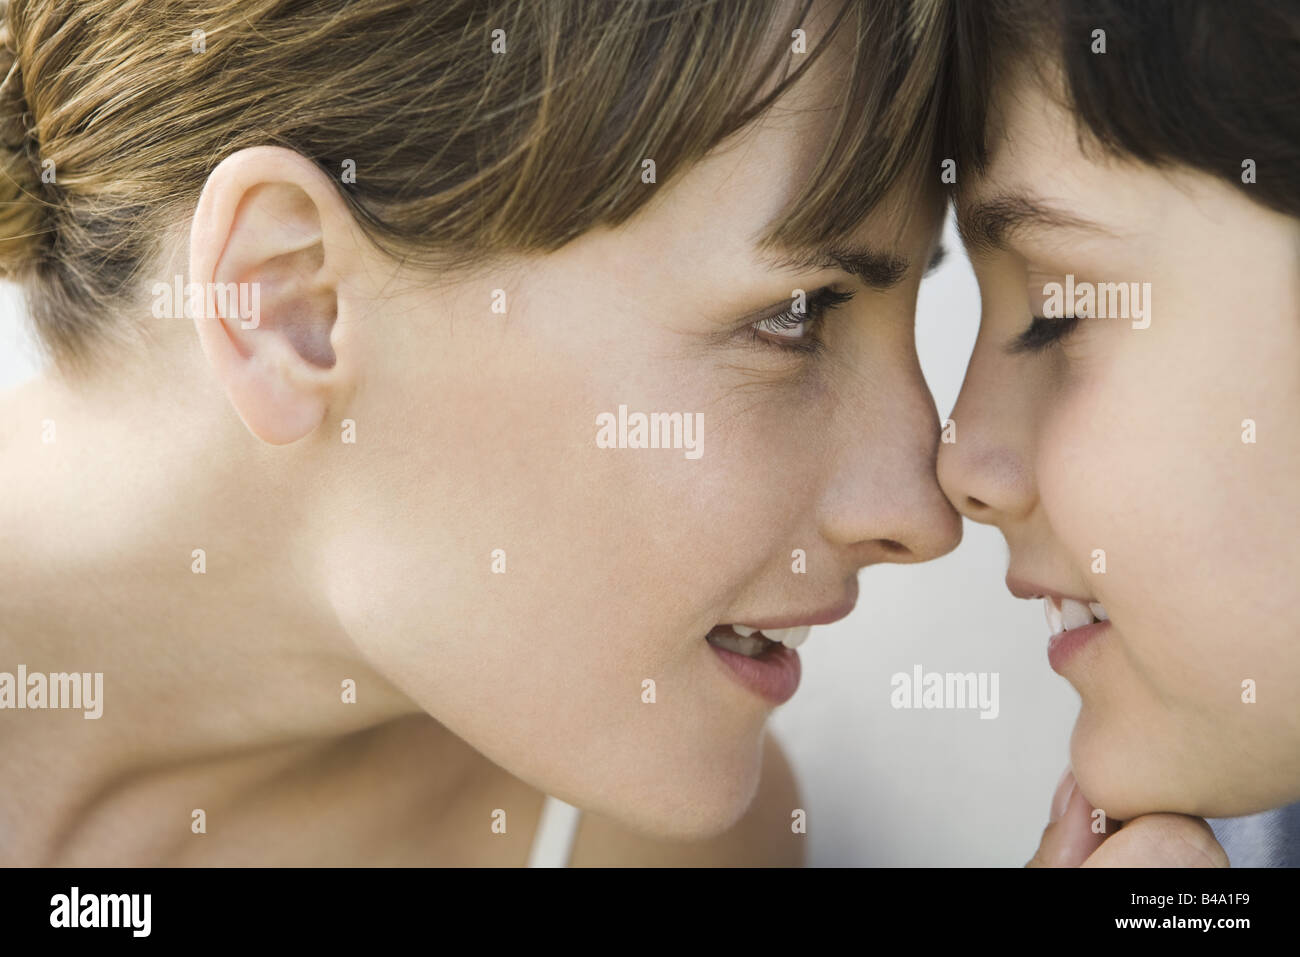 Mother and son touching noses, boy's eyes closed, side view - Stock Image